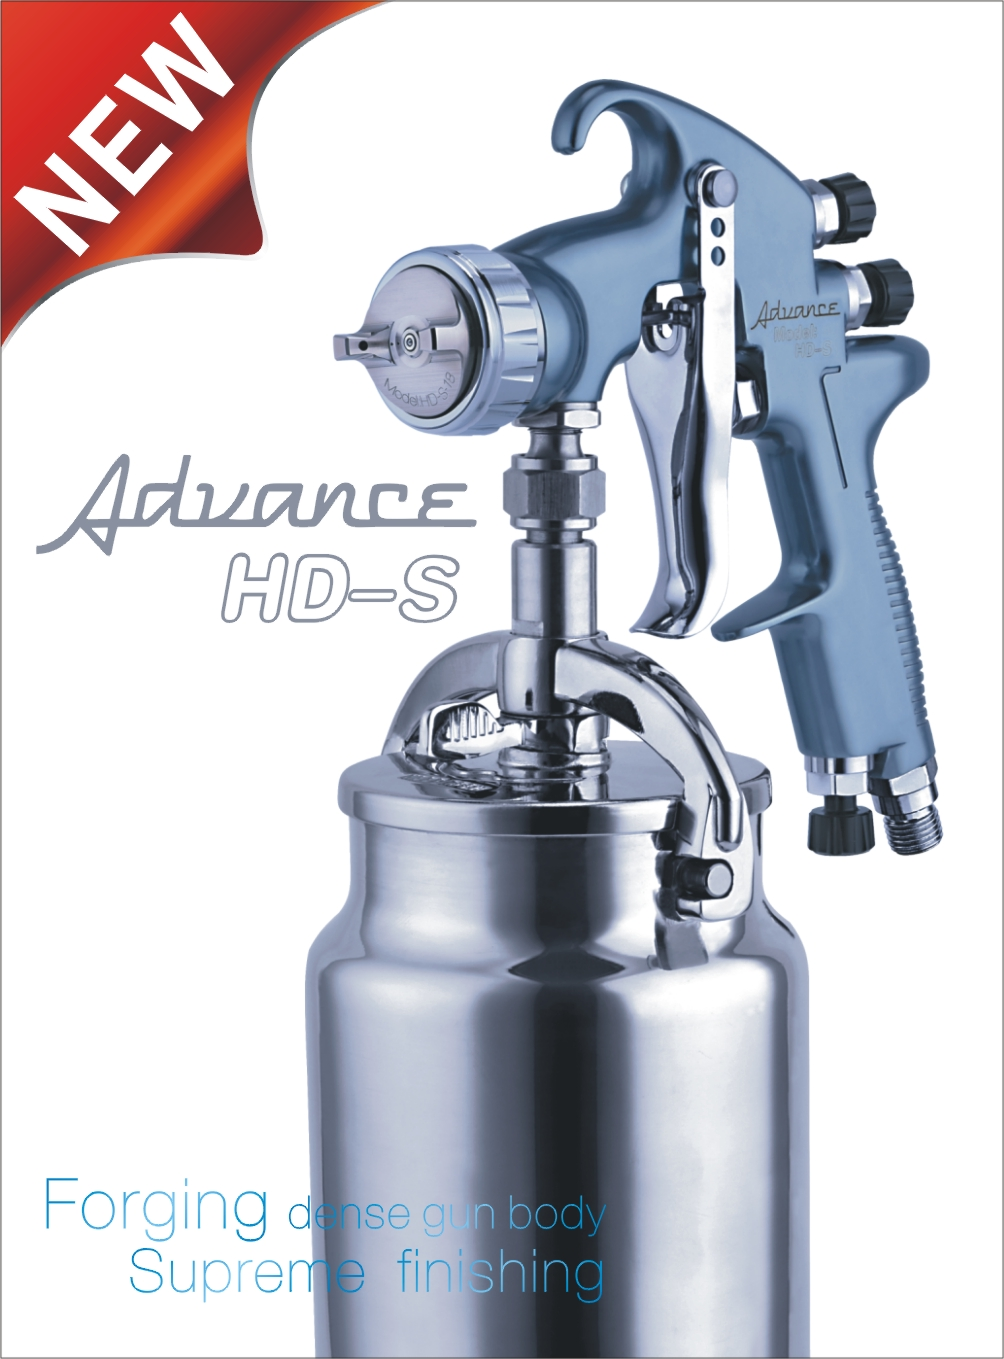 Advance-Hd-s  Pistola de pintura